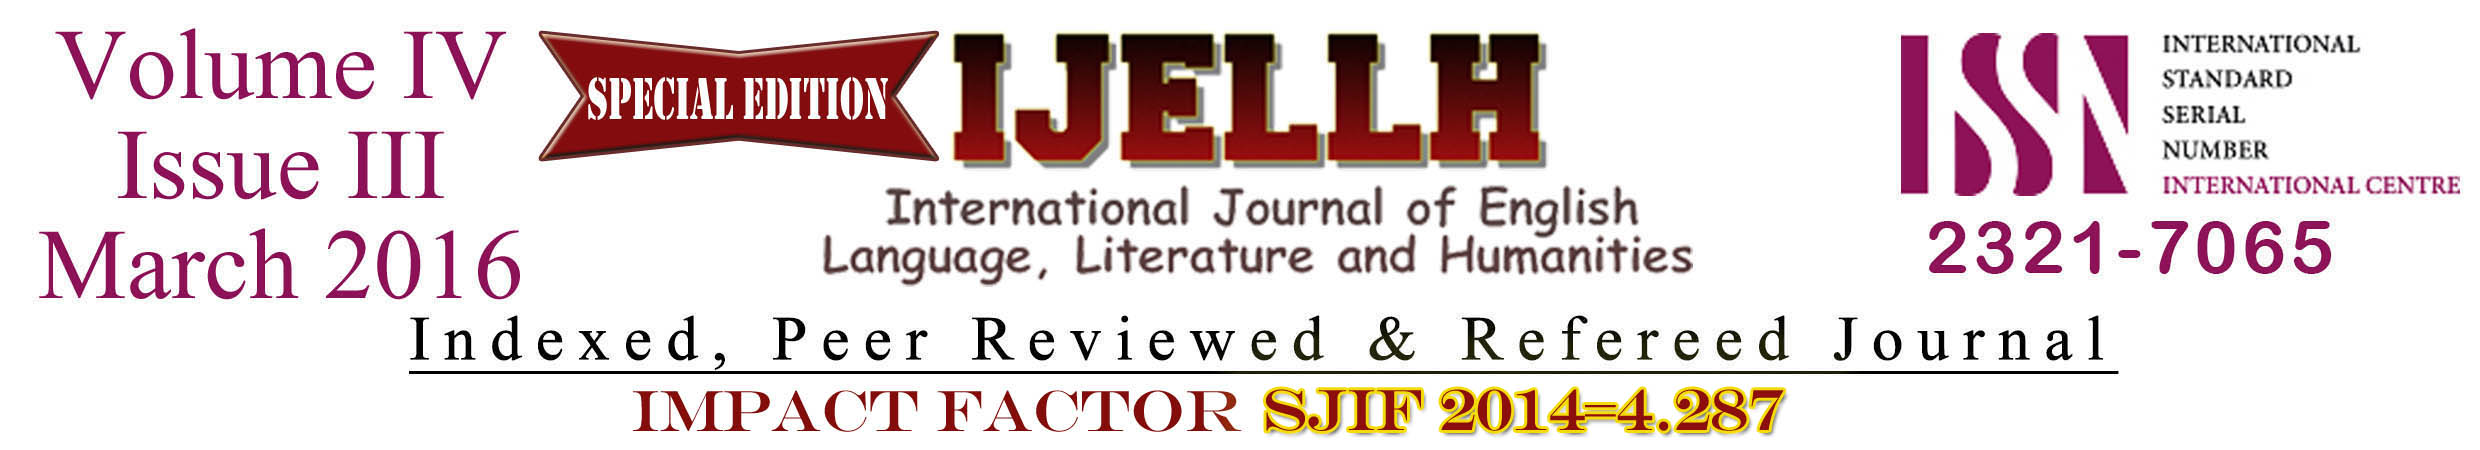 View Vol. 4 No. 3 (2016): Special Edition Volume IV Issue III March 2016